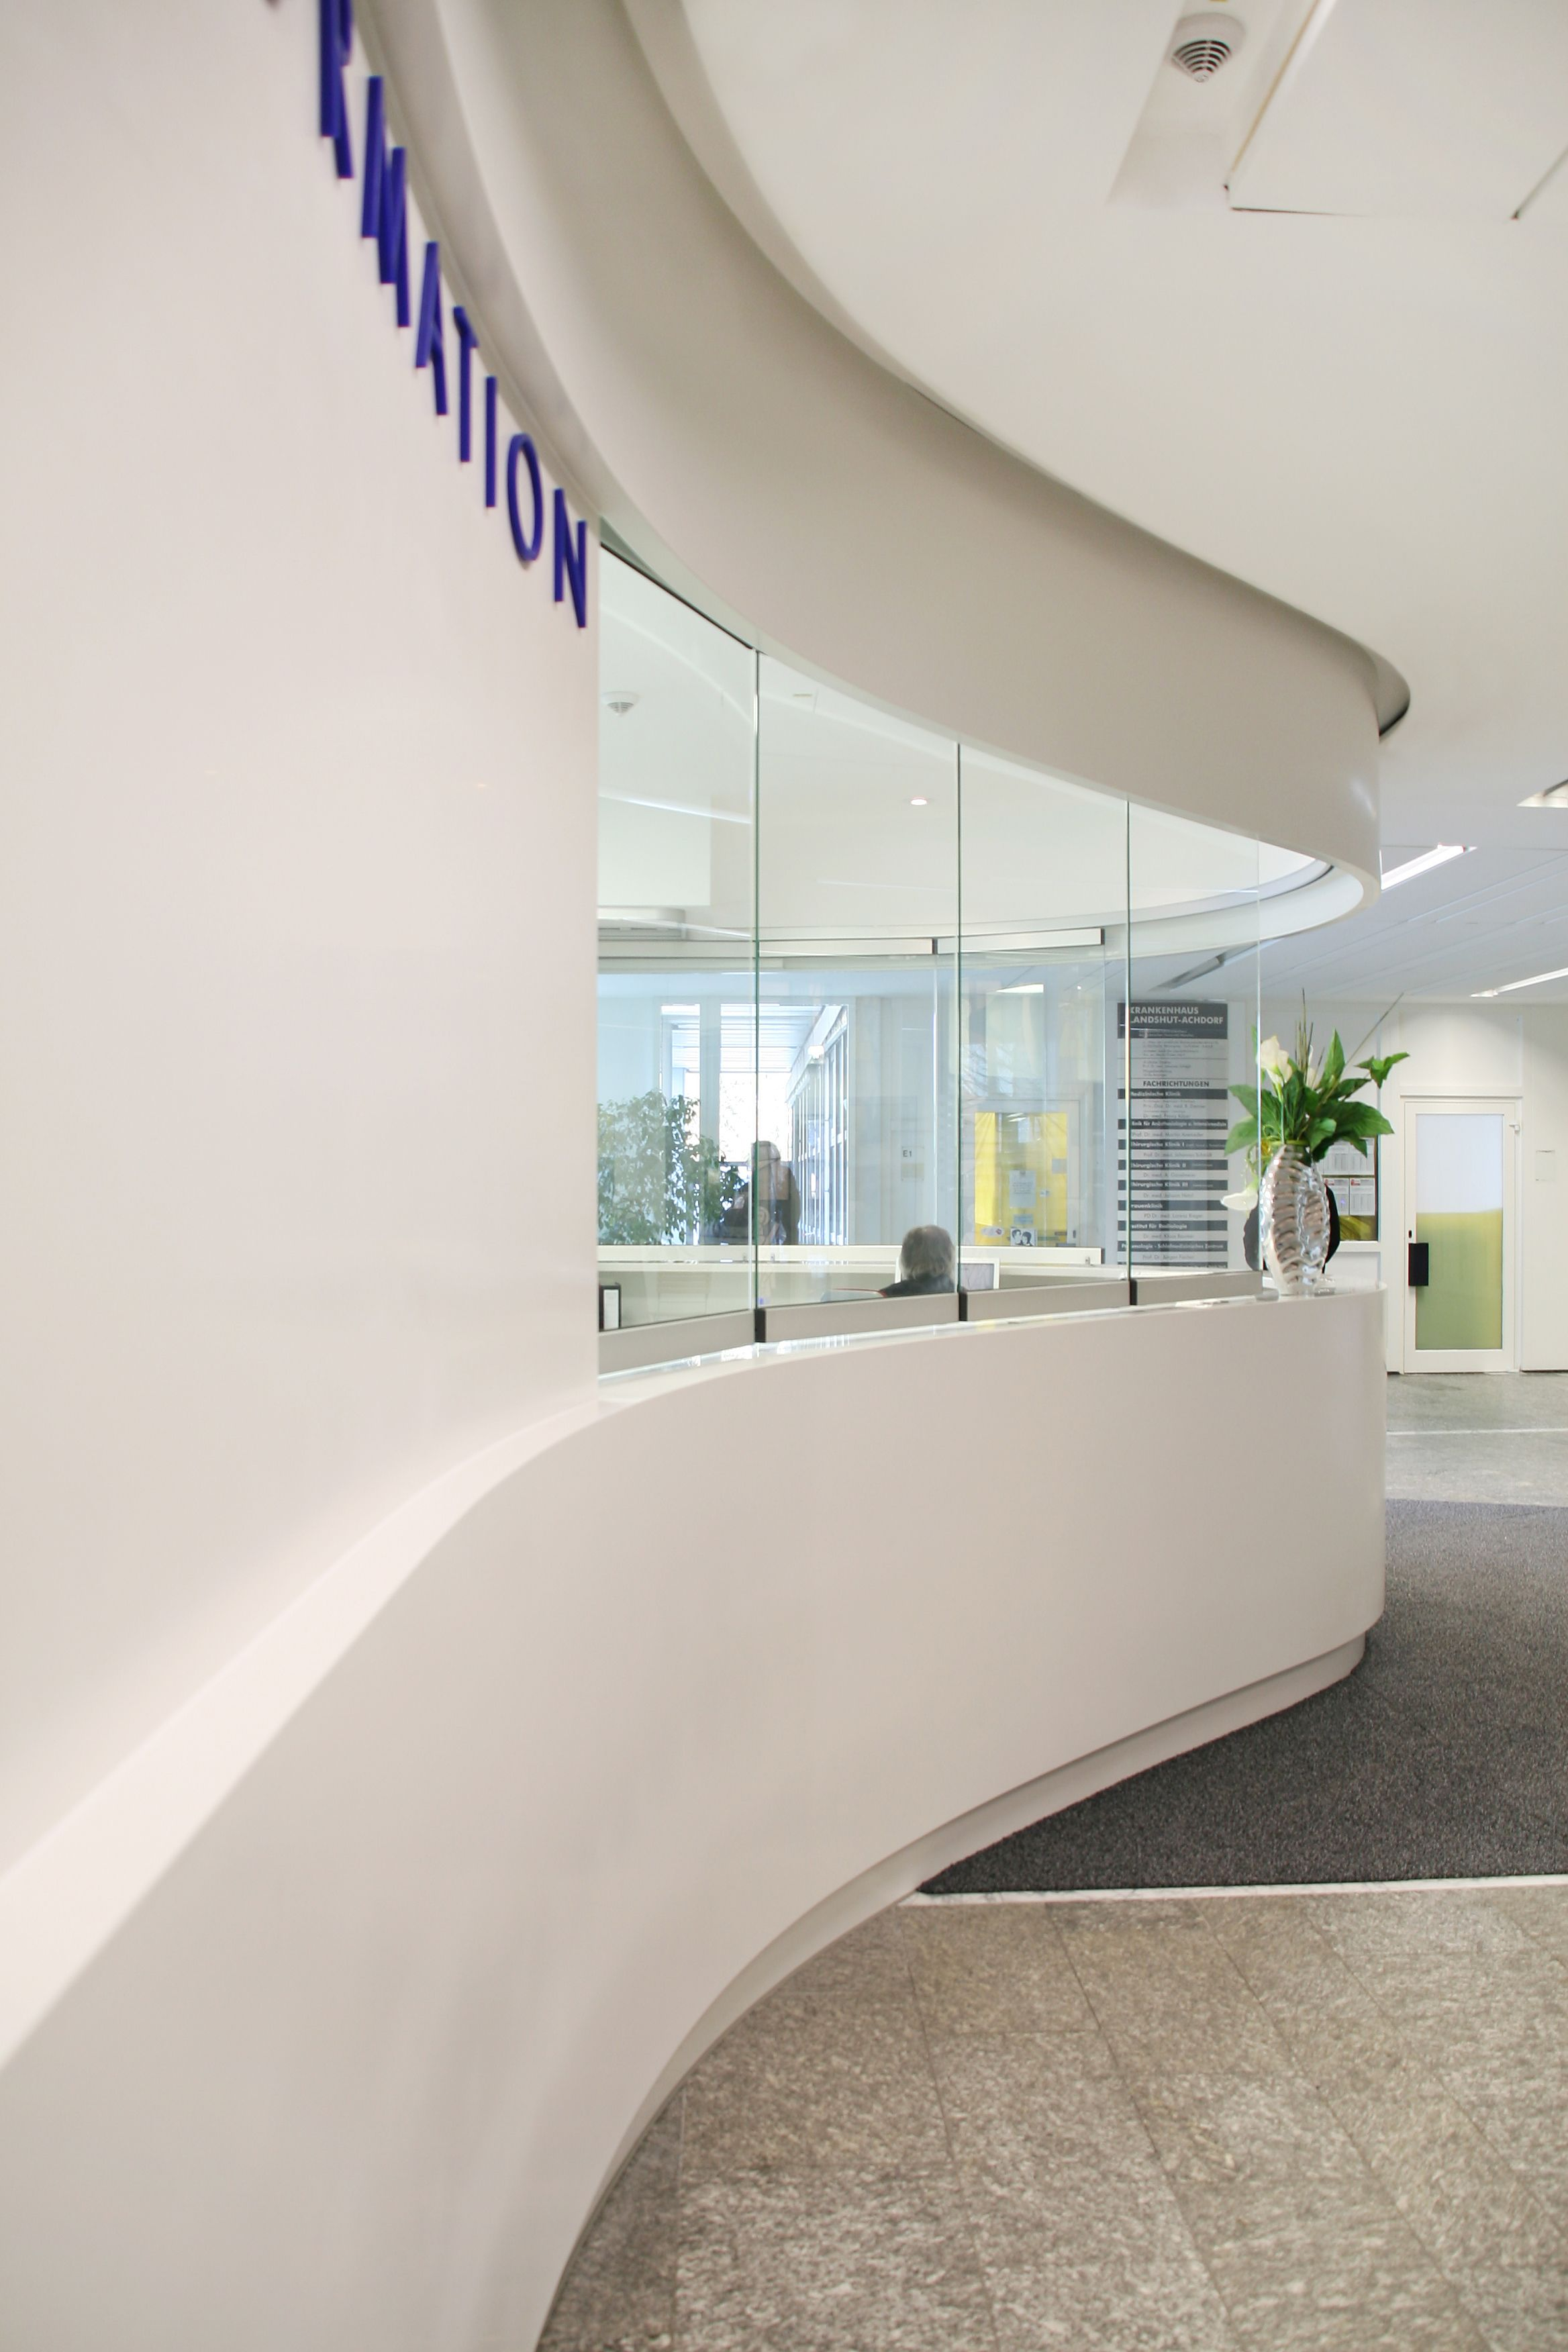 In the Landshut Clinic, the XXL reception desk was manufactured in a ...